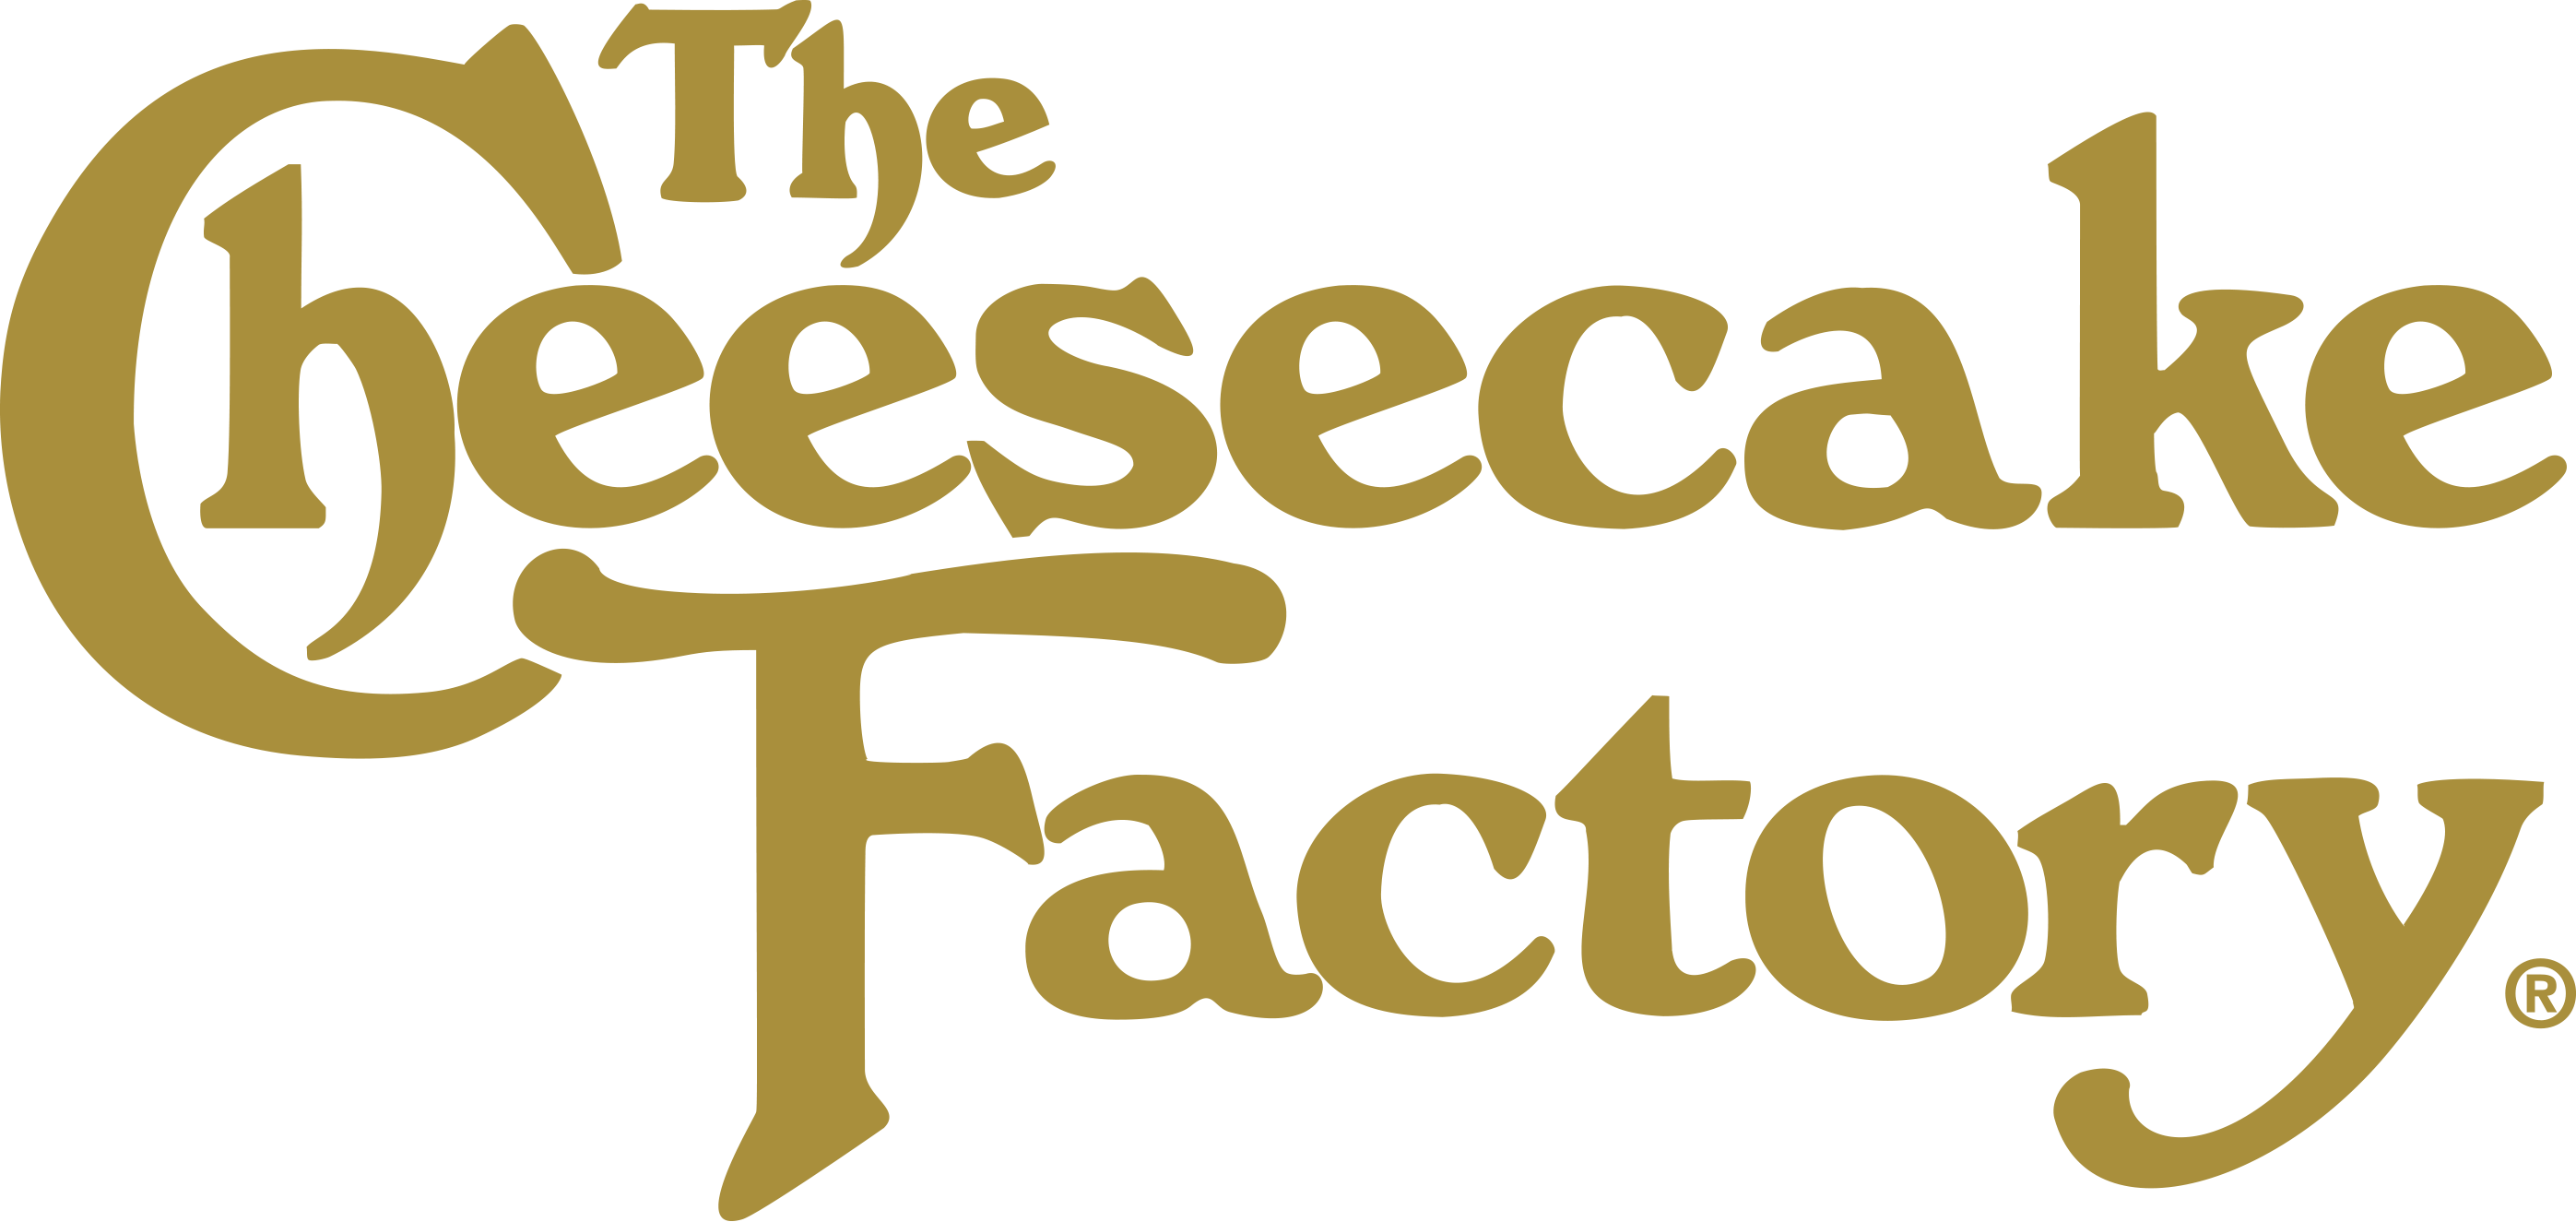 Mother s day at. Cheesecake factory png clip